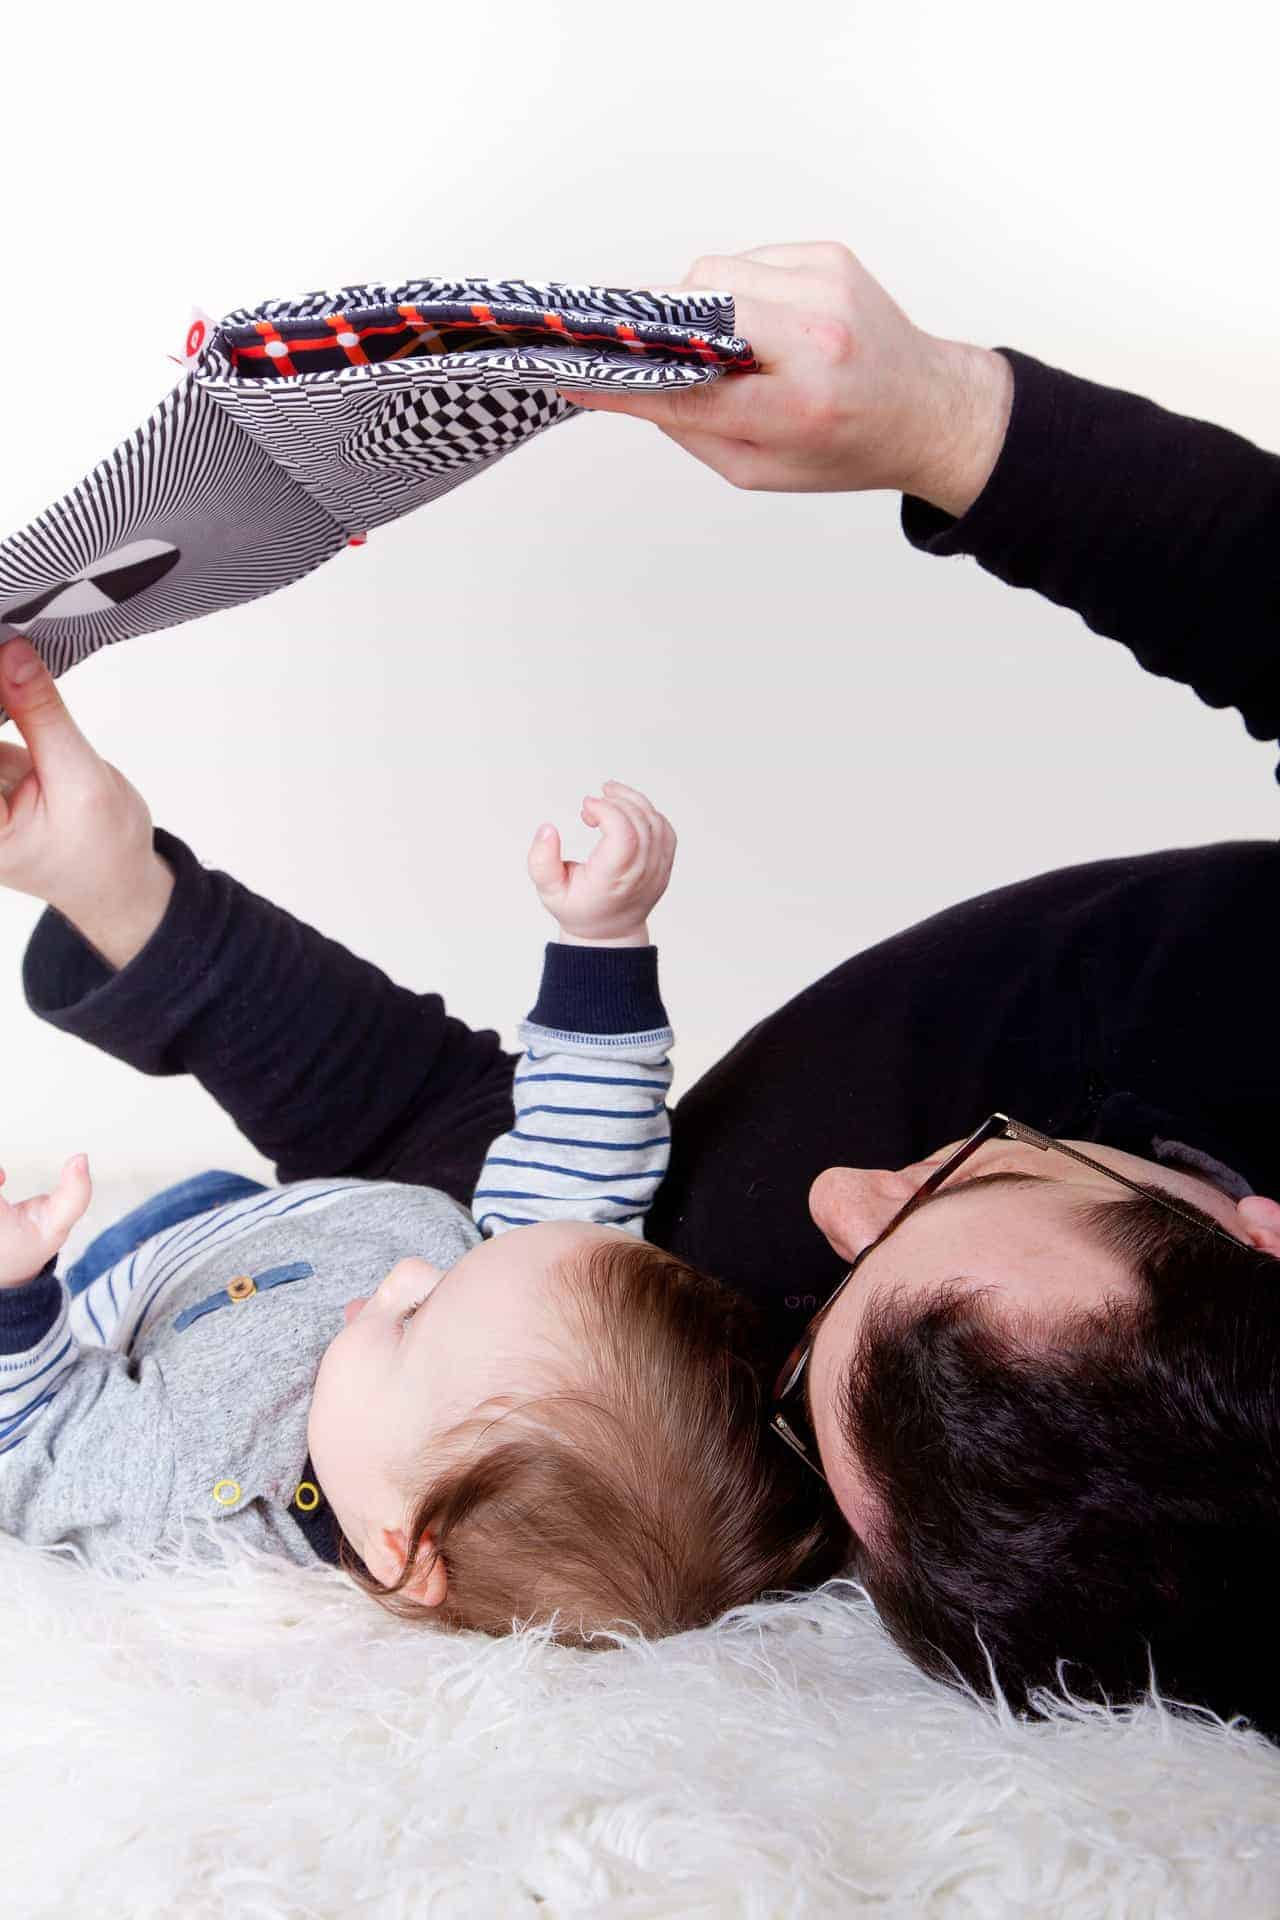 Being a first time dad can be overwhelming! Here is some of the top advice for first time dads to help make your journey easier. #parenting #advicefordads #parentingadvice #sharinglifesmoments